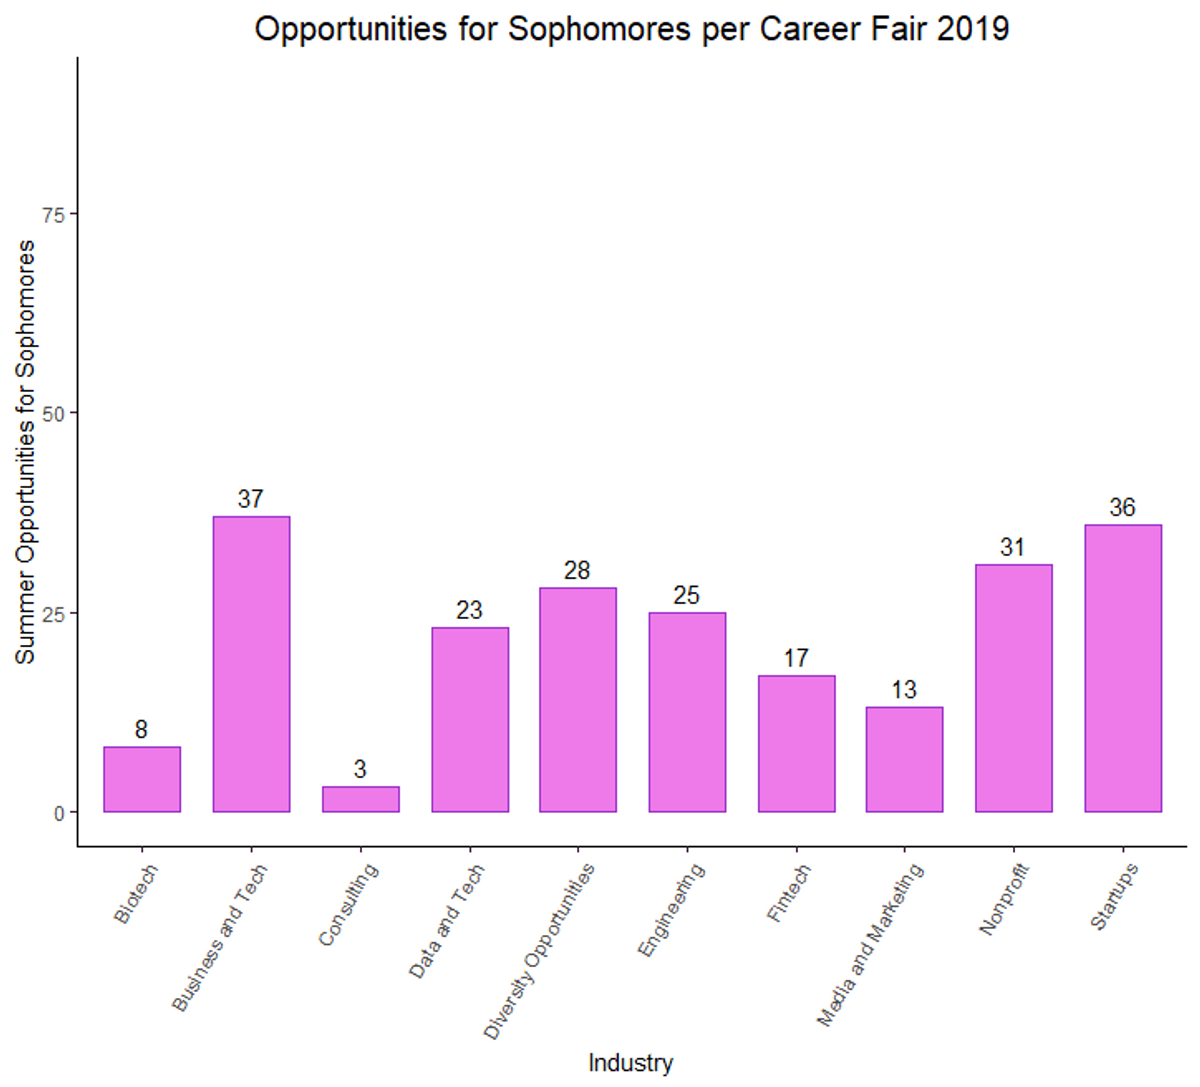 Opportunities for Sophomores per Career Fair 2019